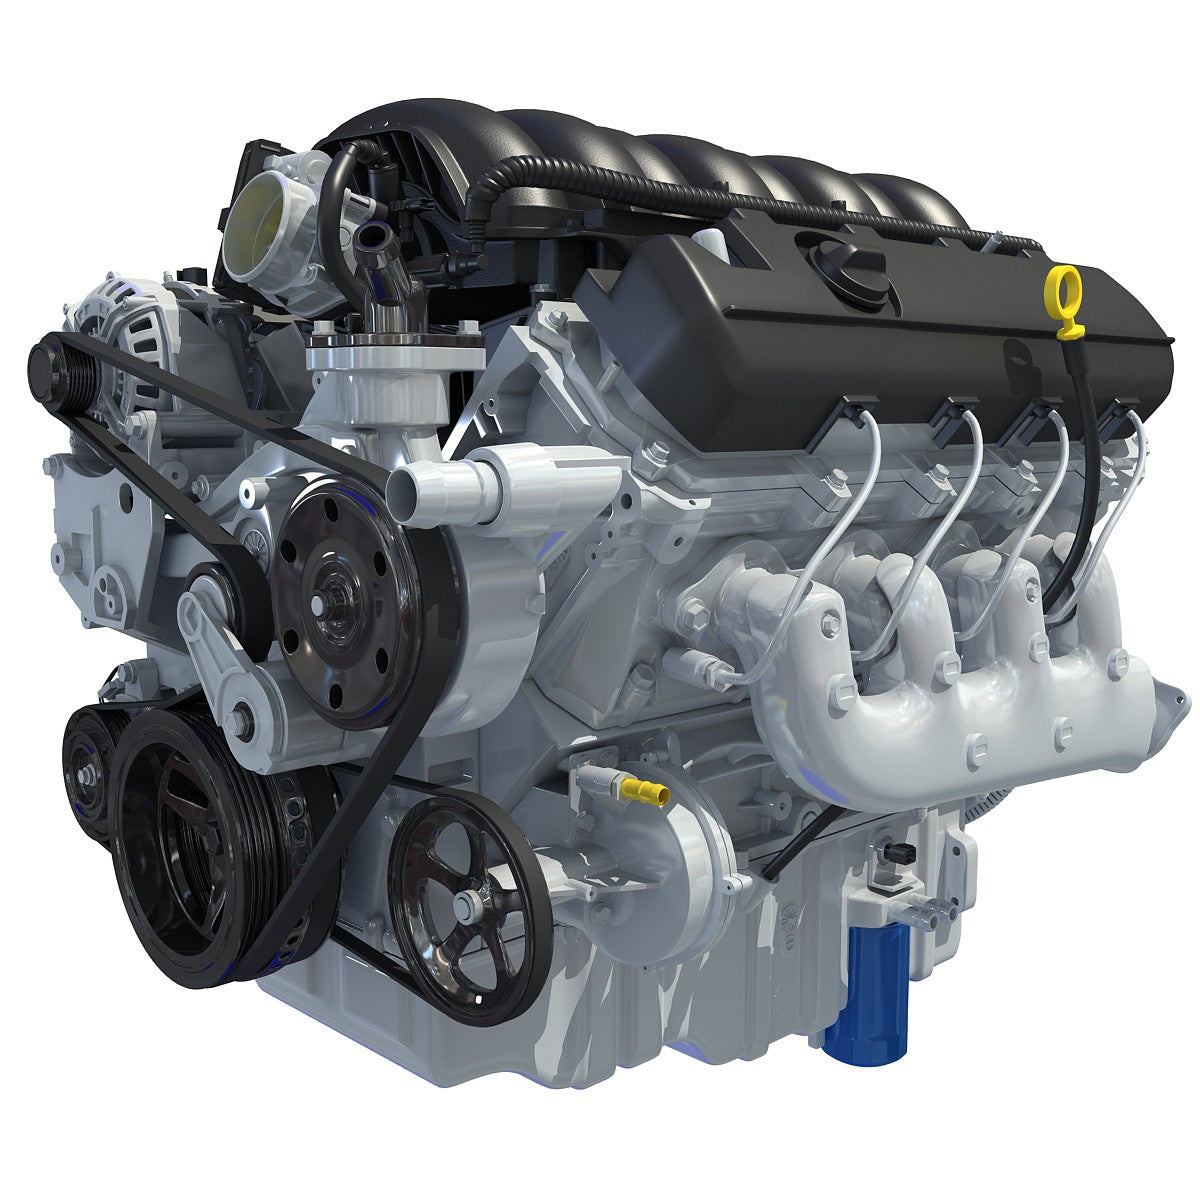 V8 Engine Chevrolet Silverado